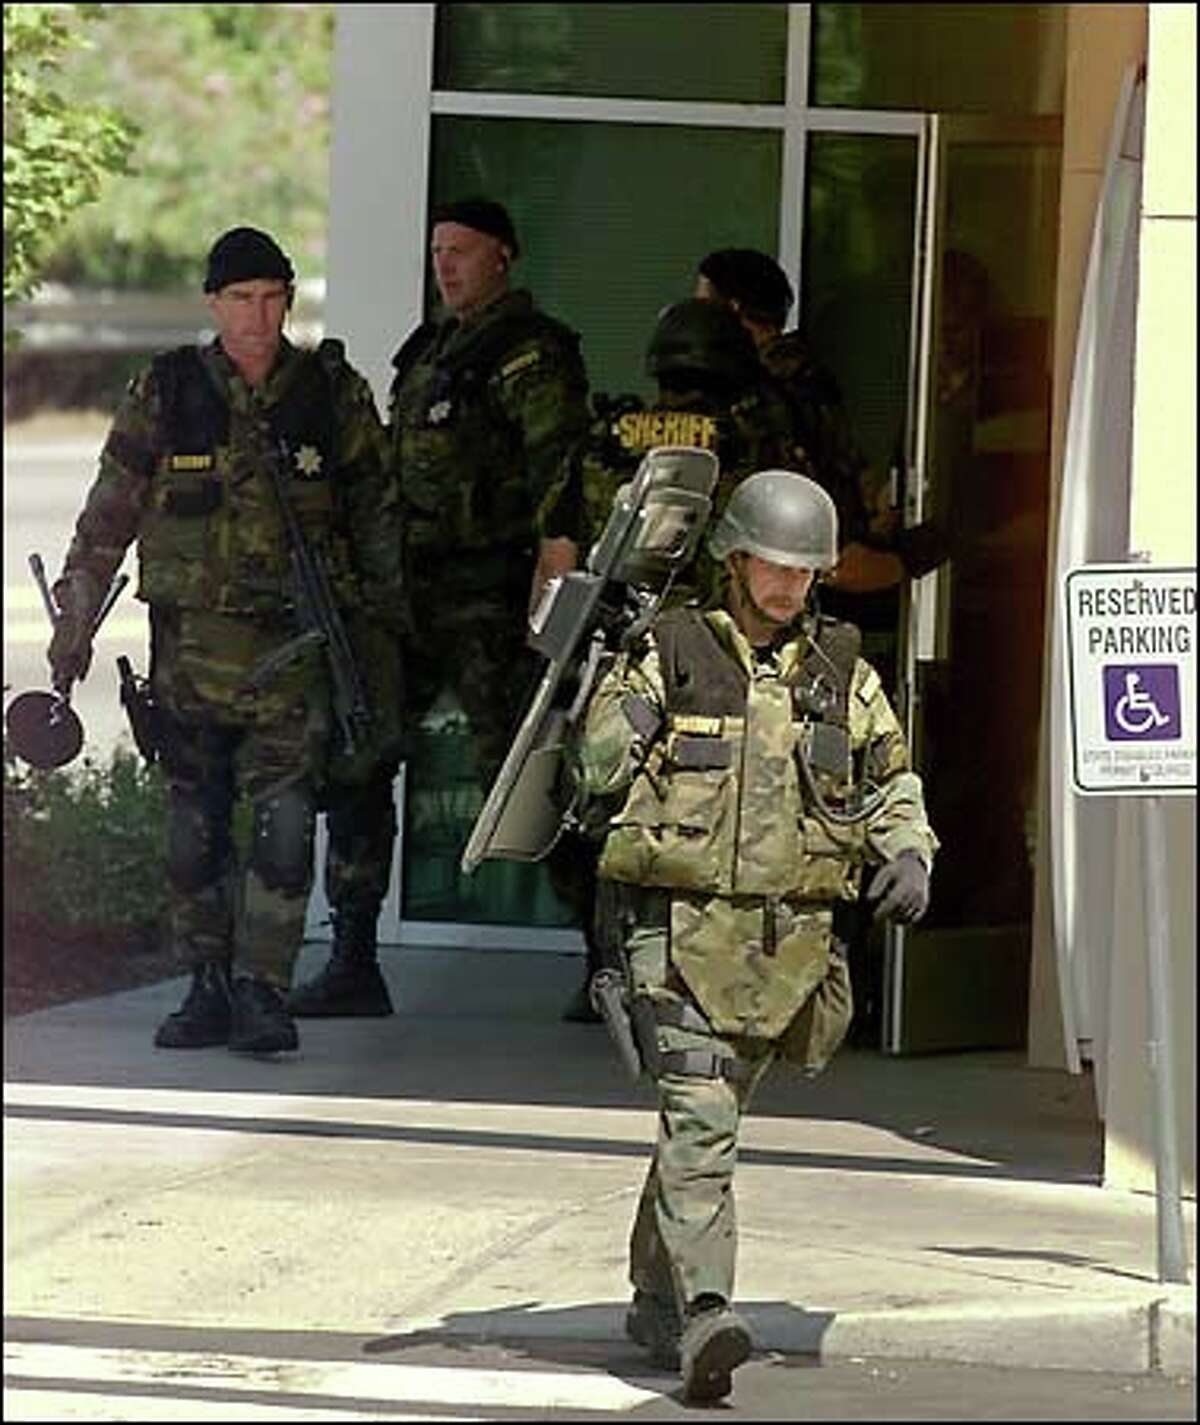 SWAT team members leave the Bank of America branch across from Sea-Tac Airport after determining a suspected robber was no longer inside.